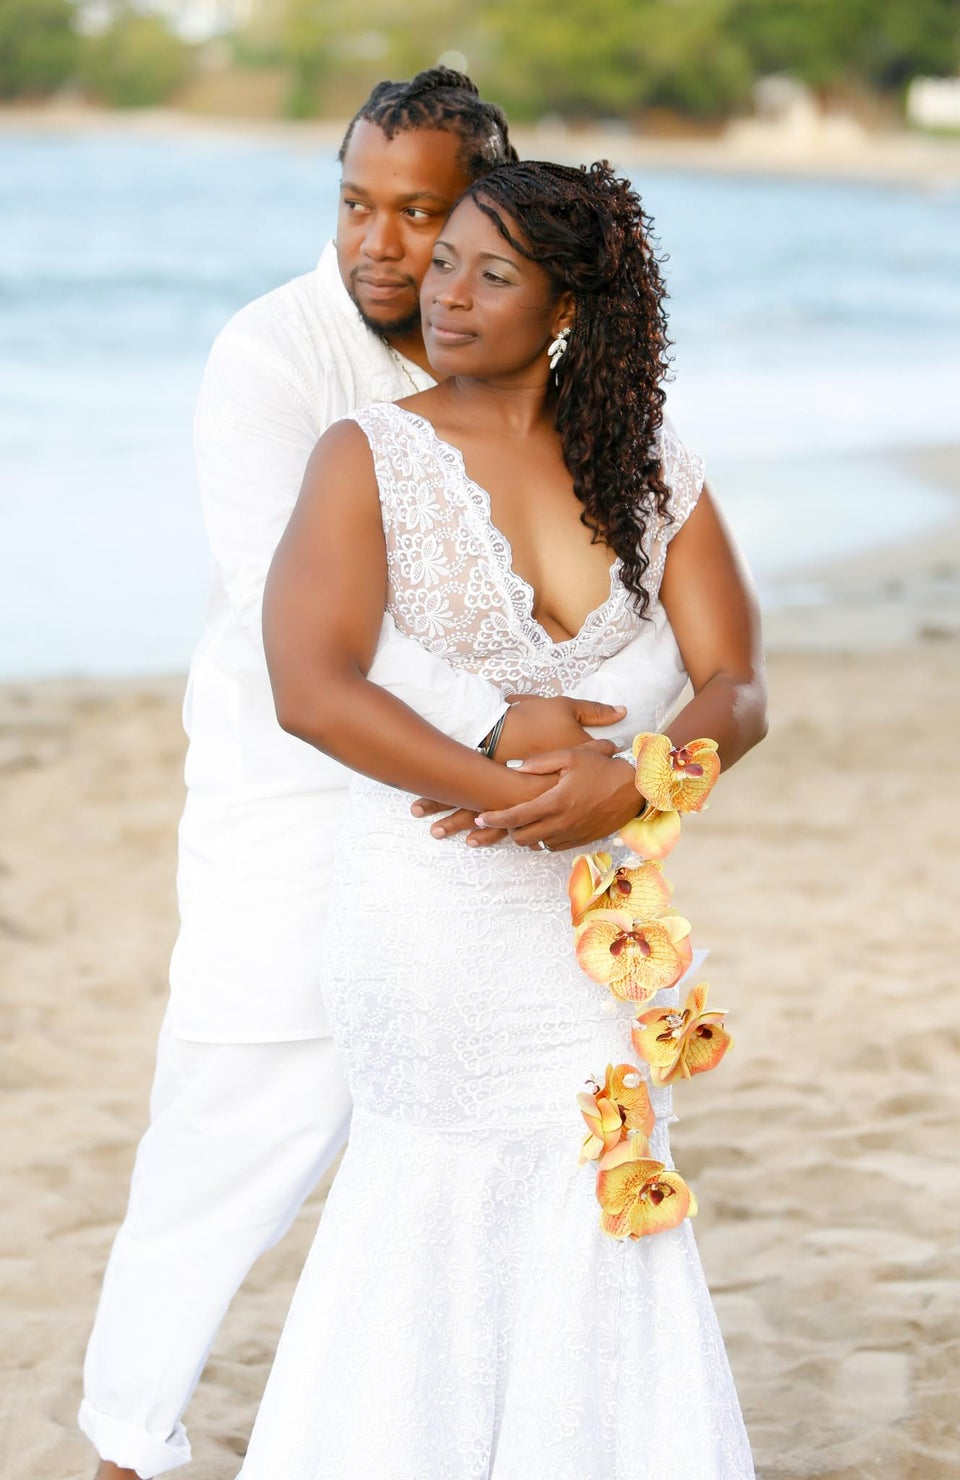 Bridal Bliss: Soul Mates Melissa and Abiola Met at Work and Married In Paradise